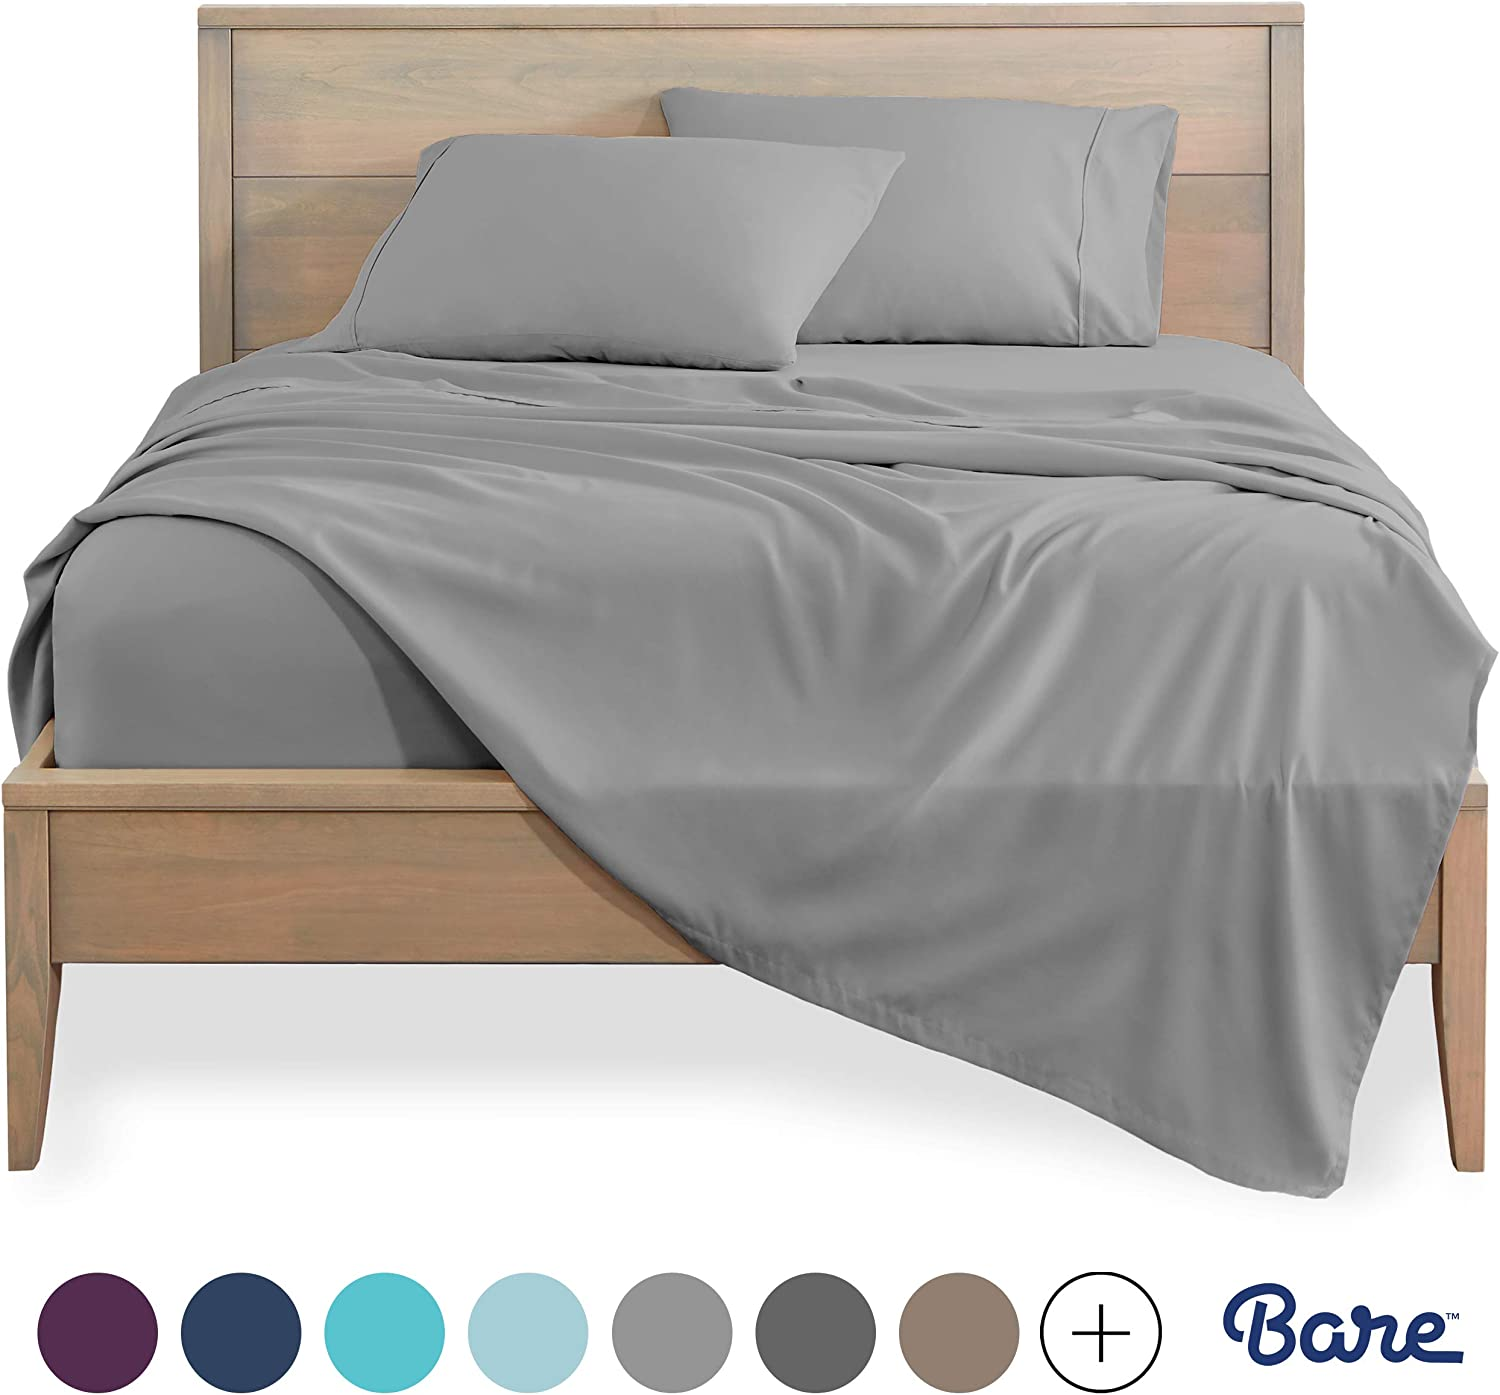 Bare Home Twin XL Sheet Set - College Dorm Size - Premium 1800 Ultra-Soft Microfiber Sheets Twin Extra Long - Double Brushed - Hypoallergenic - Wrinkle Resistant (Twin XL, Light Grey): Home & Kitchen